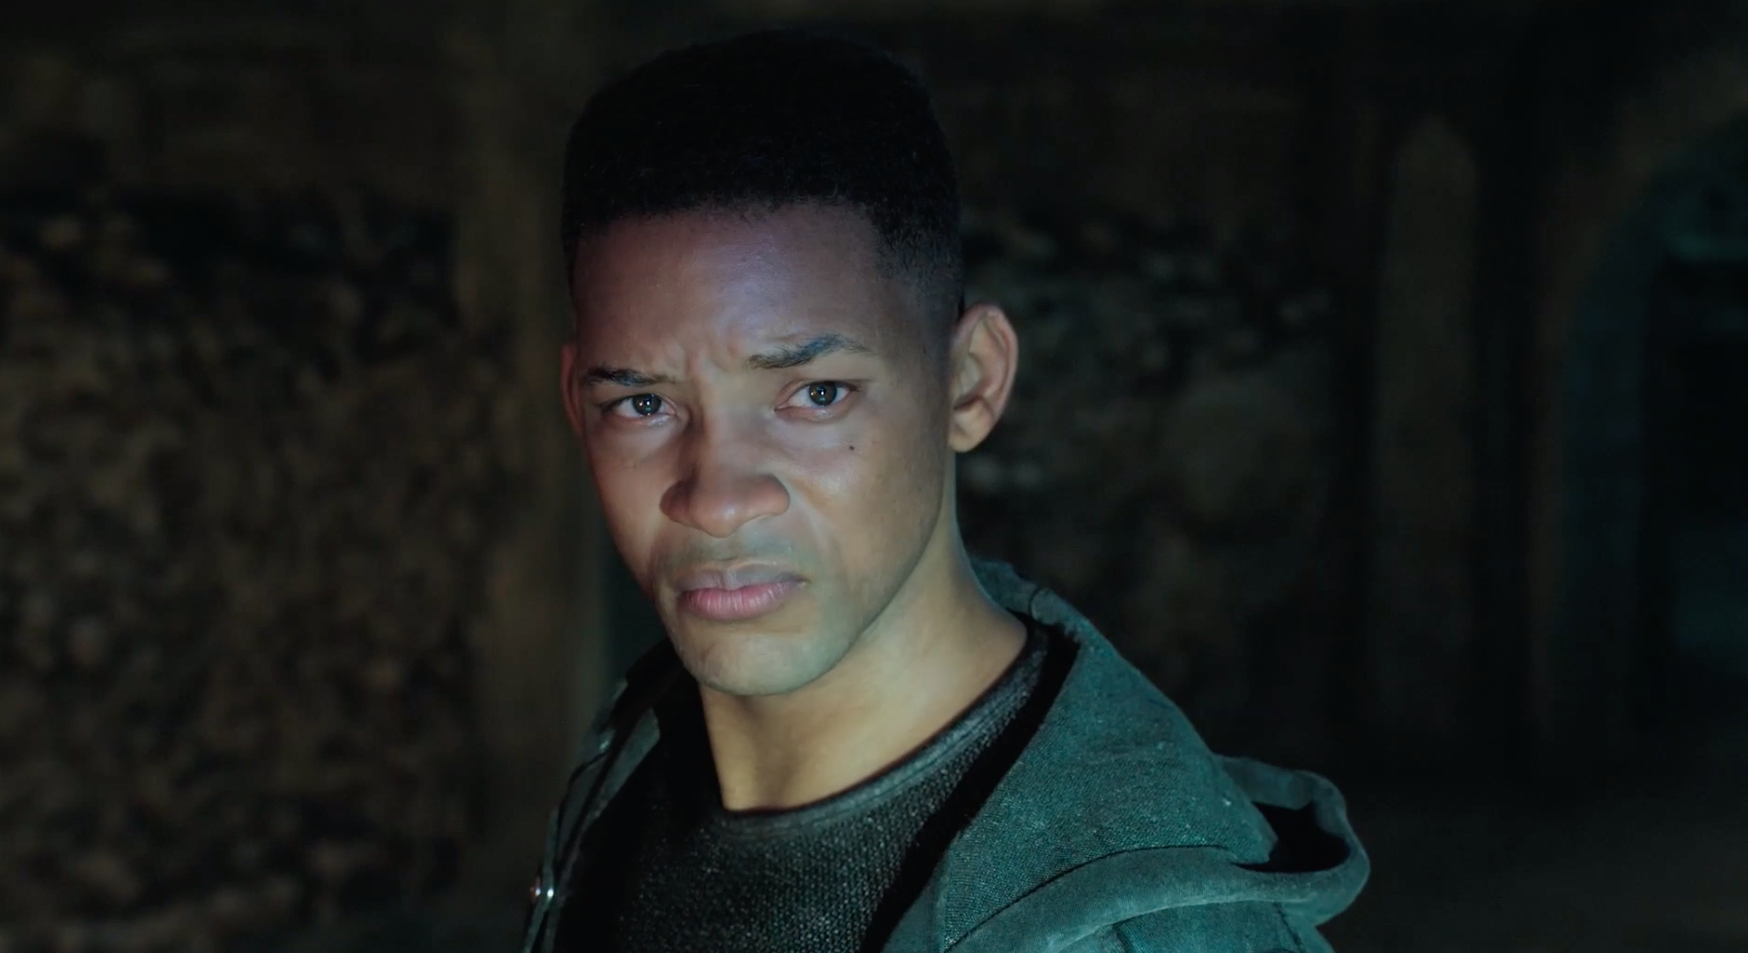 Watch Will Smith confront his younger self in the first-look clip from Ang Lee's visionary, Gemini Man, in cinemas 10 October.